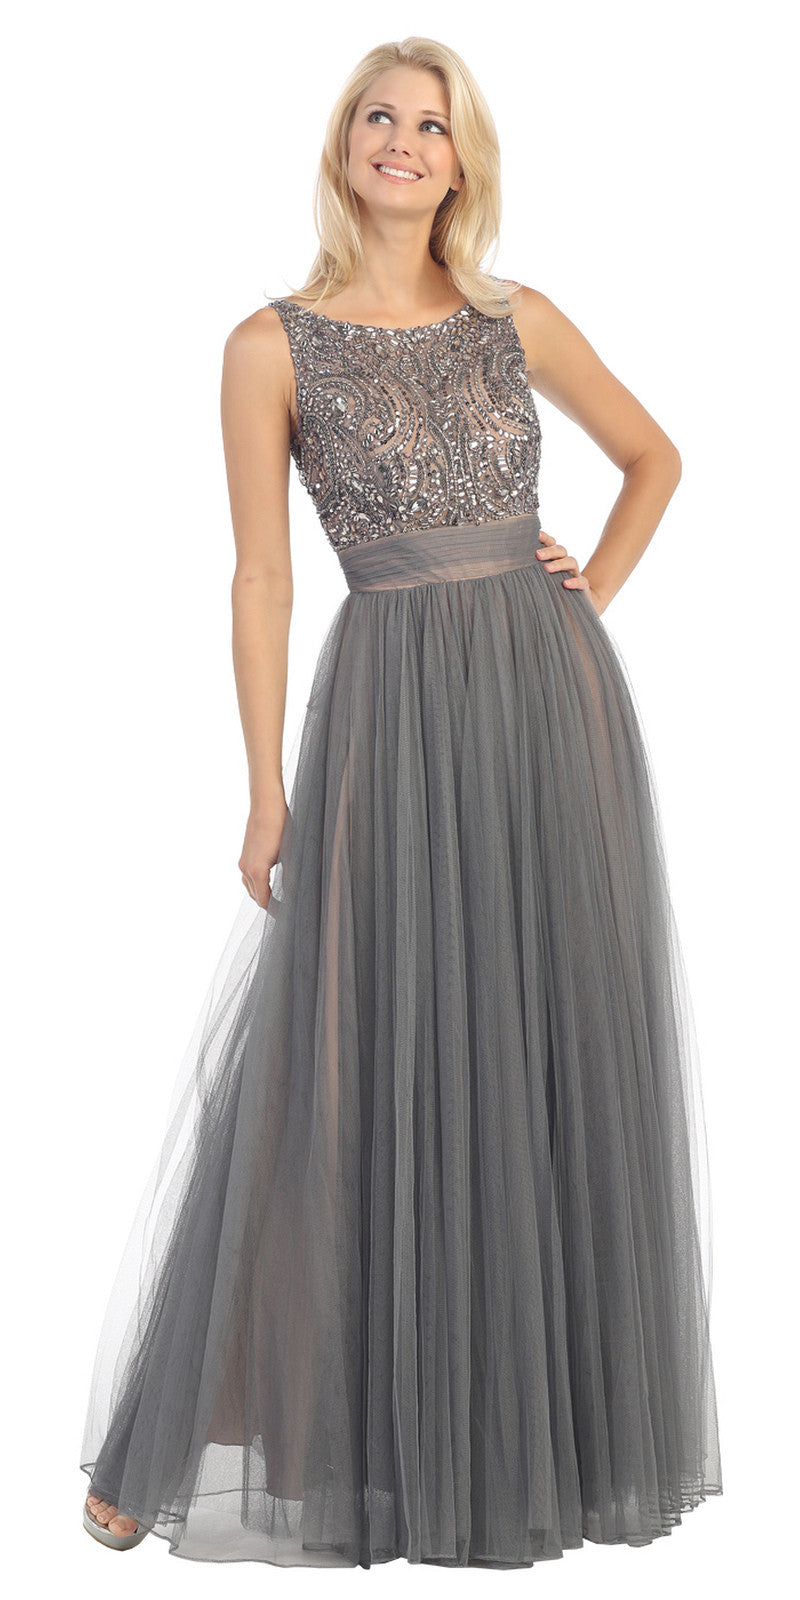 Bateau Neckline Embroidered Pleated A Line Gray Nude Dress